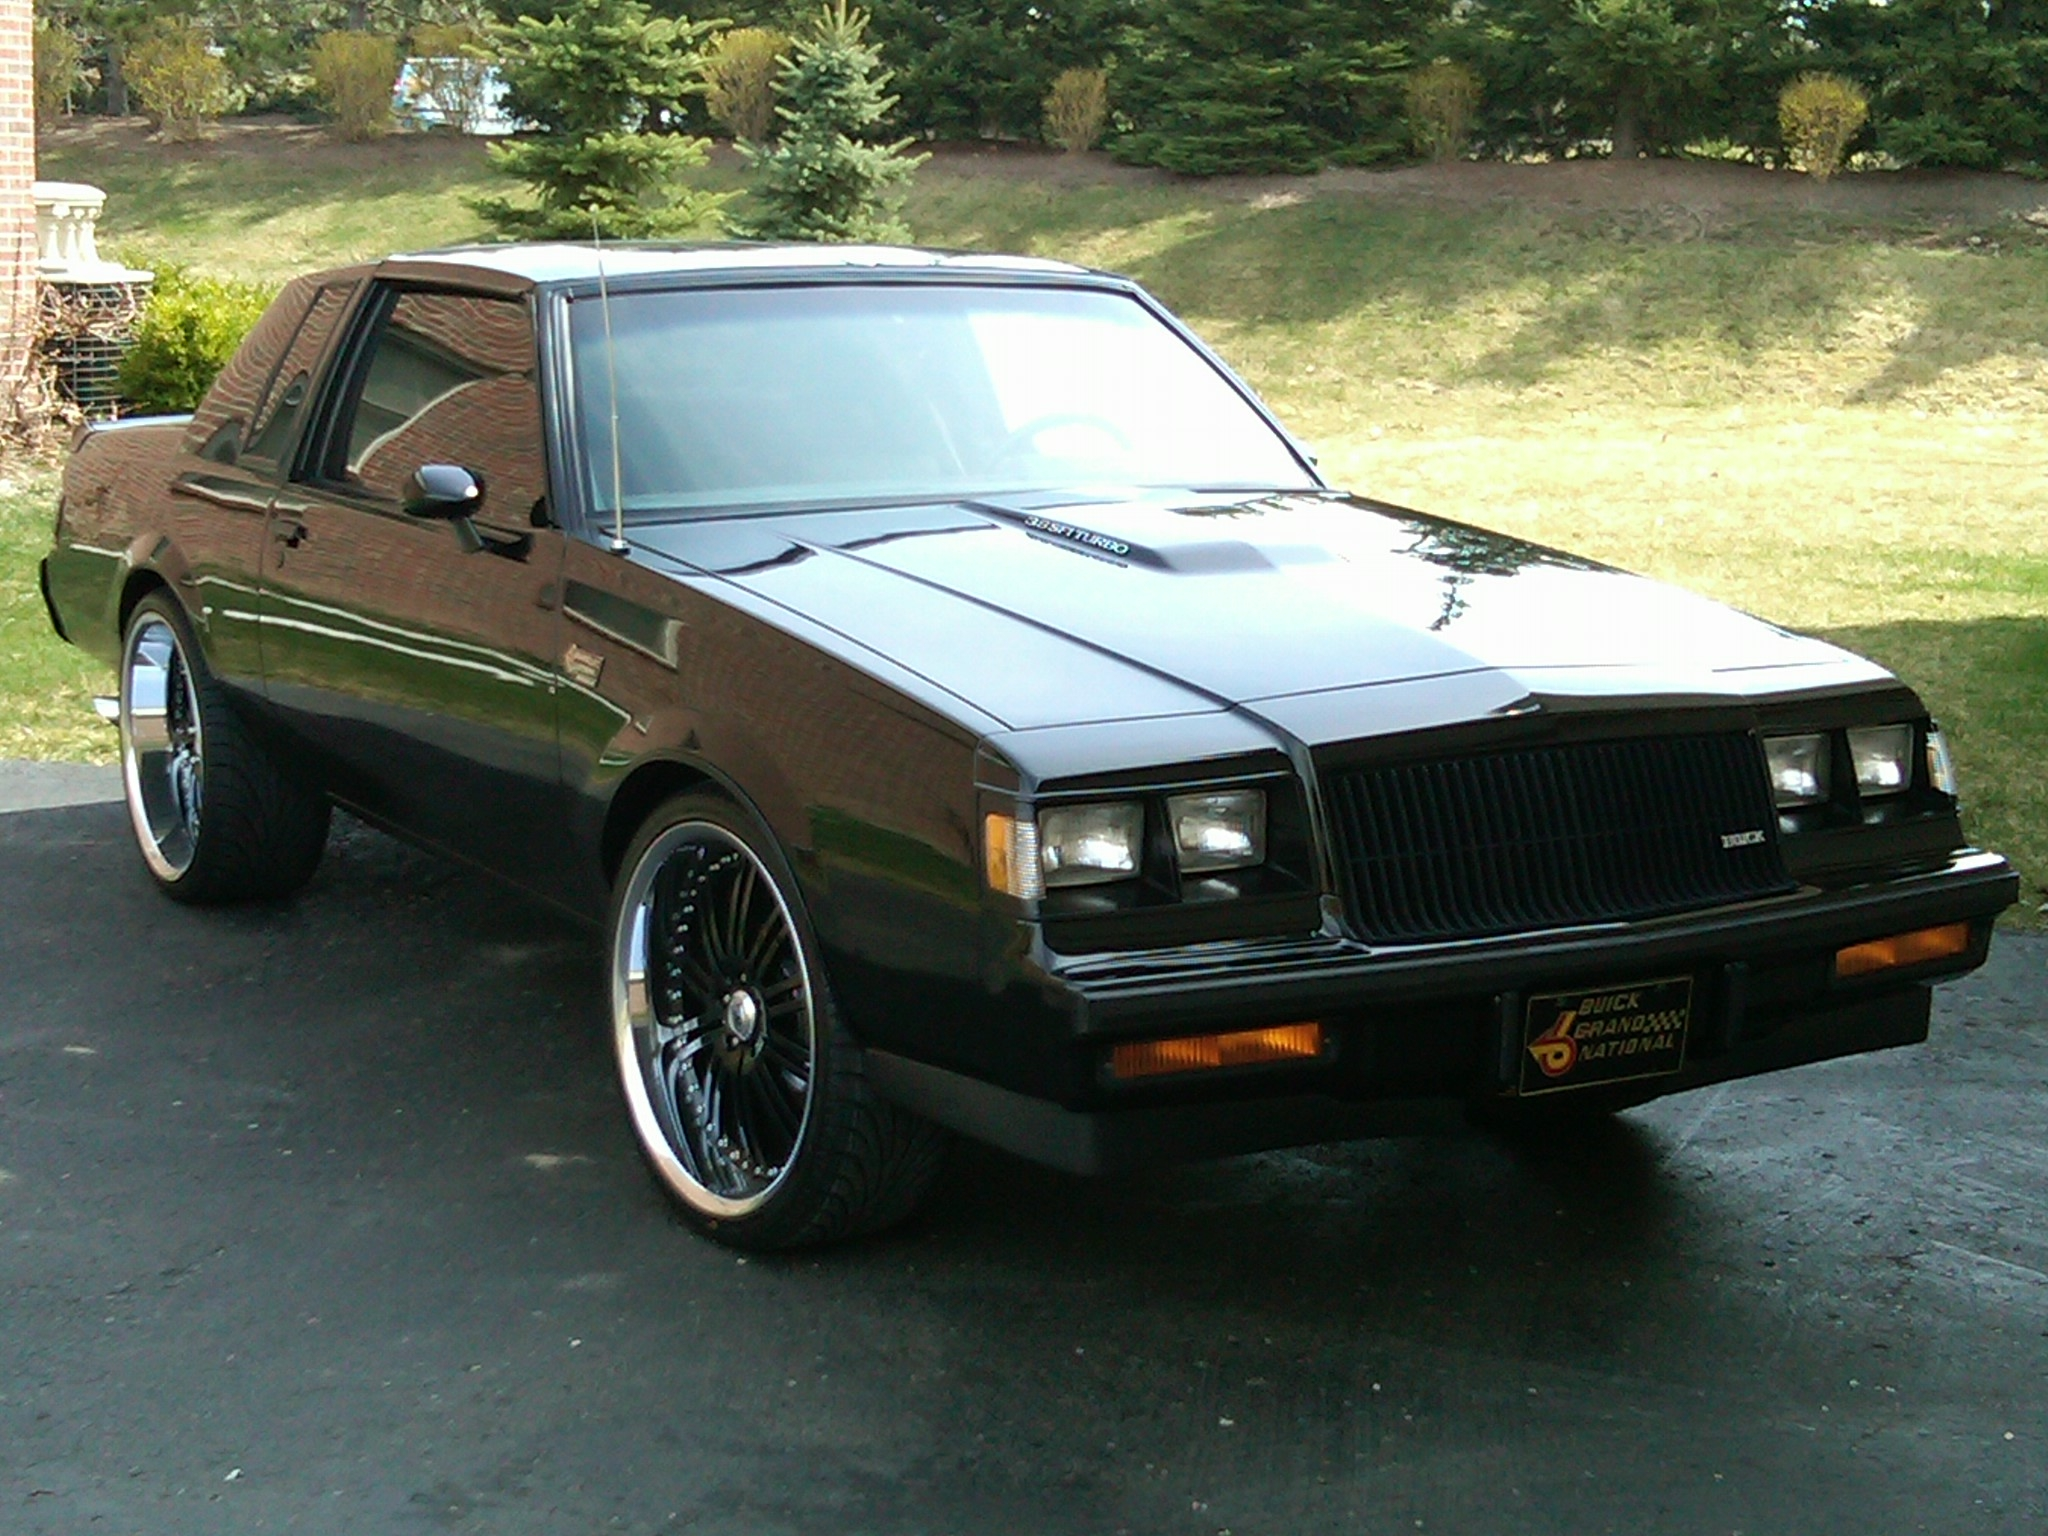 87gn's 1987 Buick Grand National